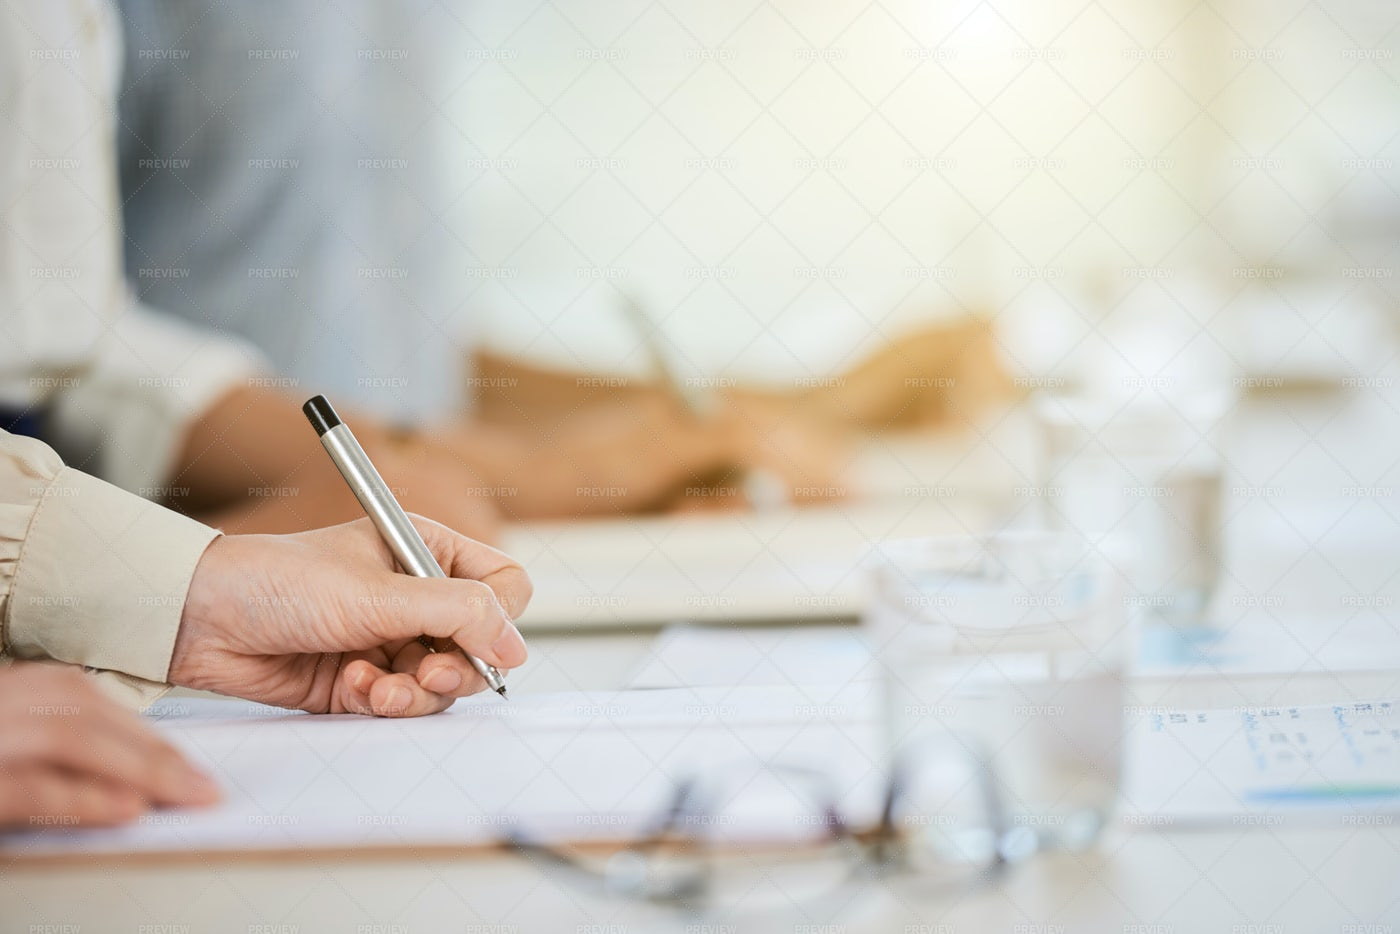 Signing Business Document: Stock Photos